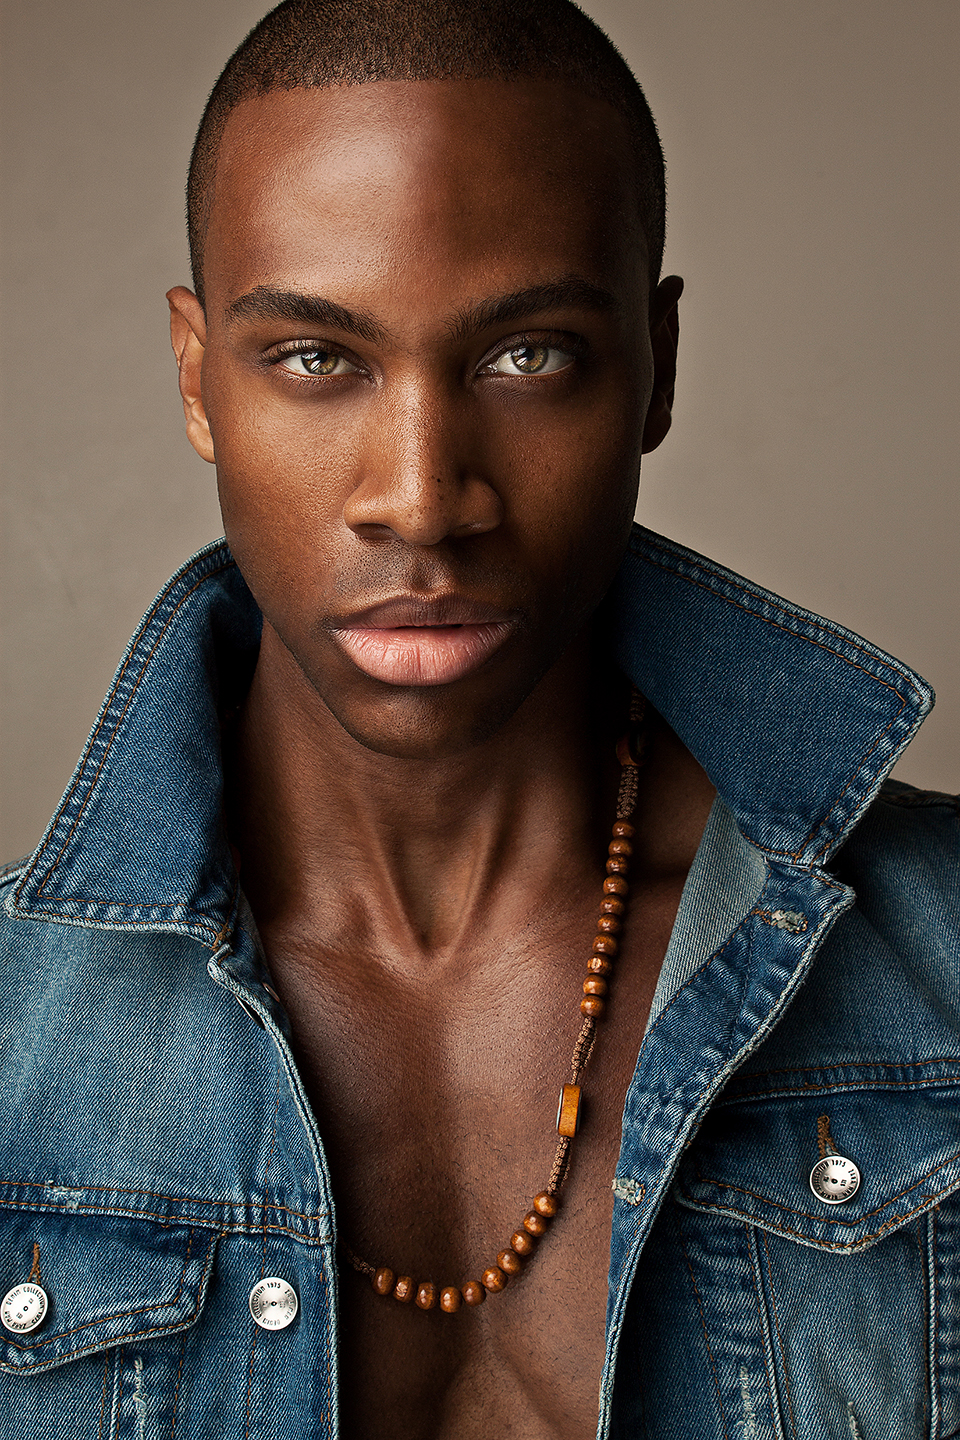 Black male model beauty, fashion, style, magazine editorial.retouch.jpg